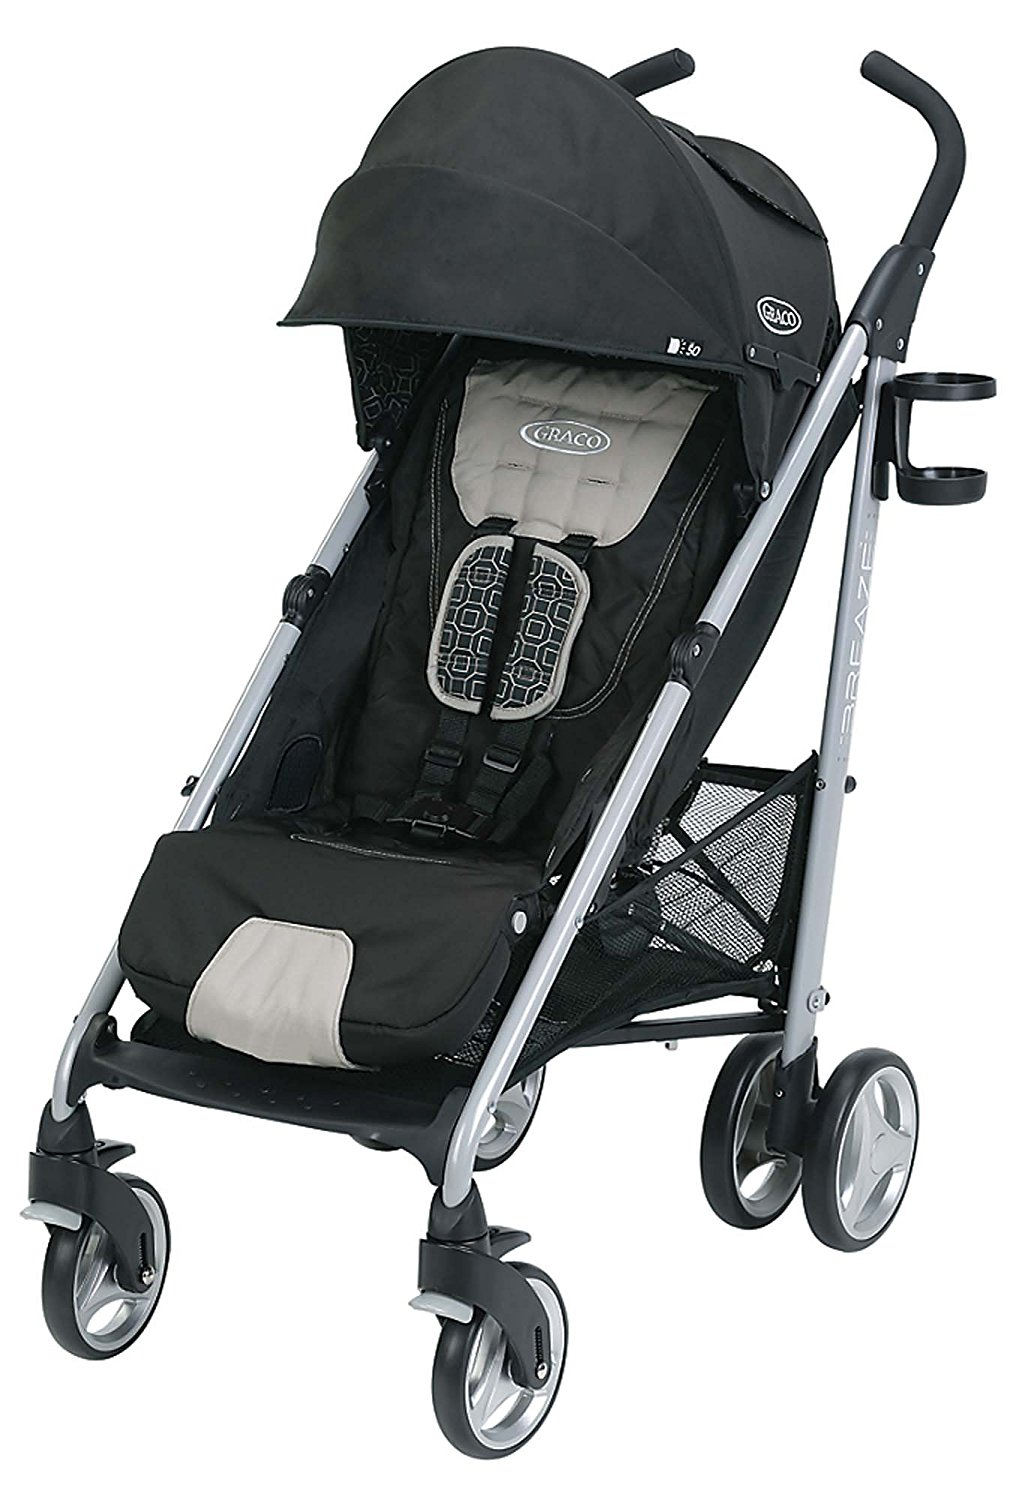 Graco Breaze Click Connect Stroller   - $149.99